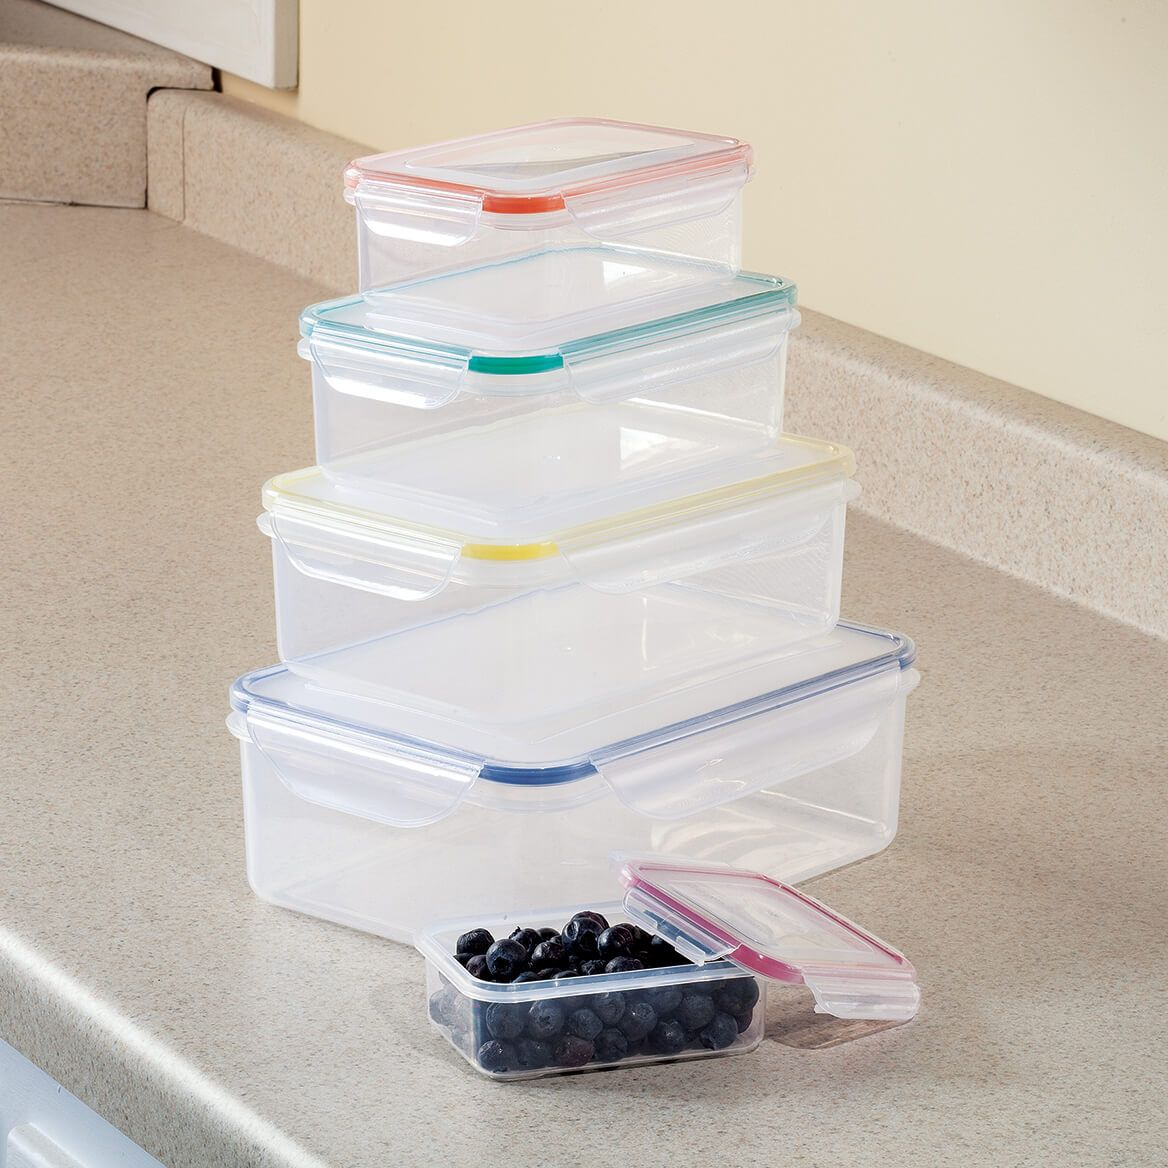 Memory Seal Silicone 10 Pc Storage Set by Homestyle Kitchen-363172